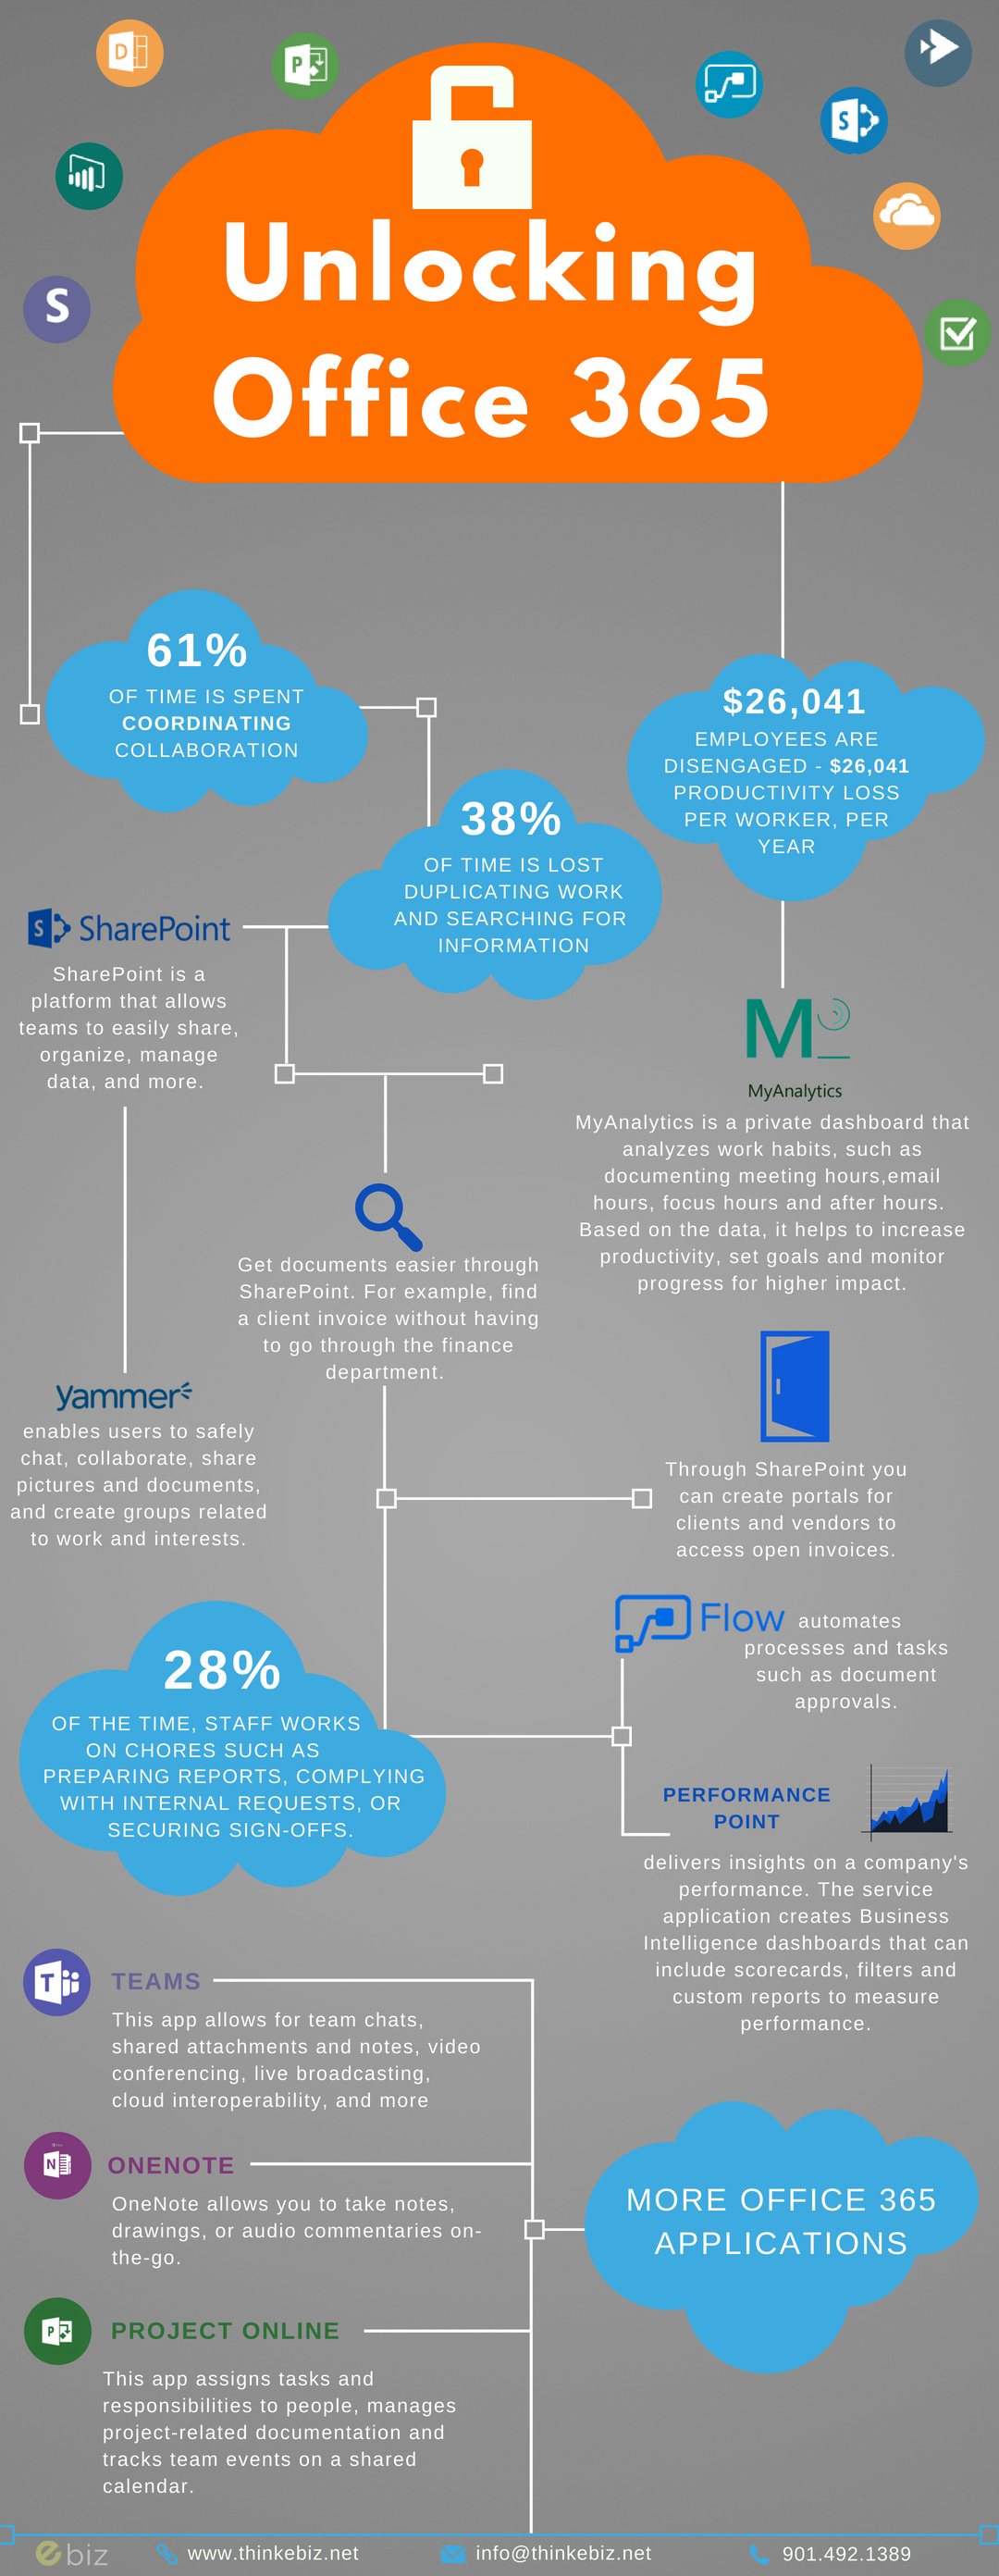 Office 365 Infographic (1)